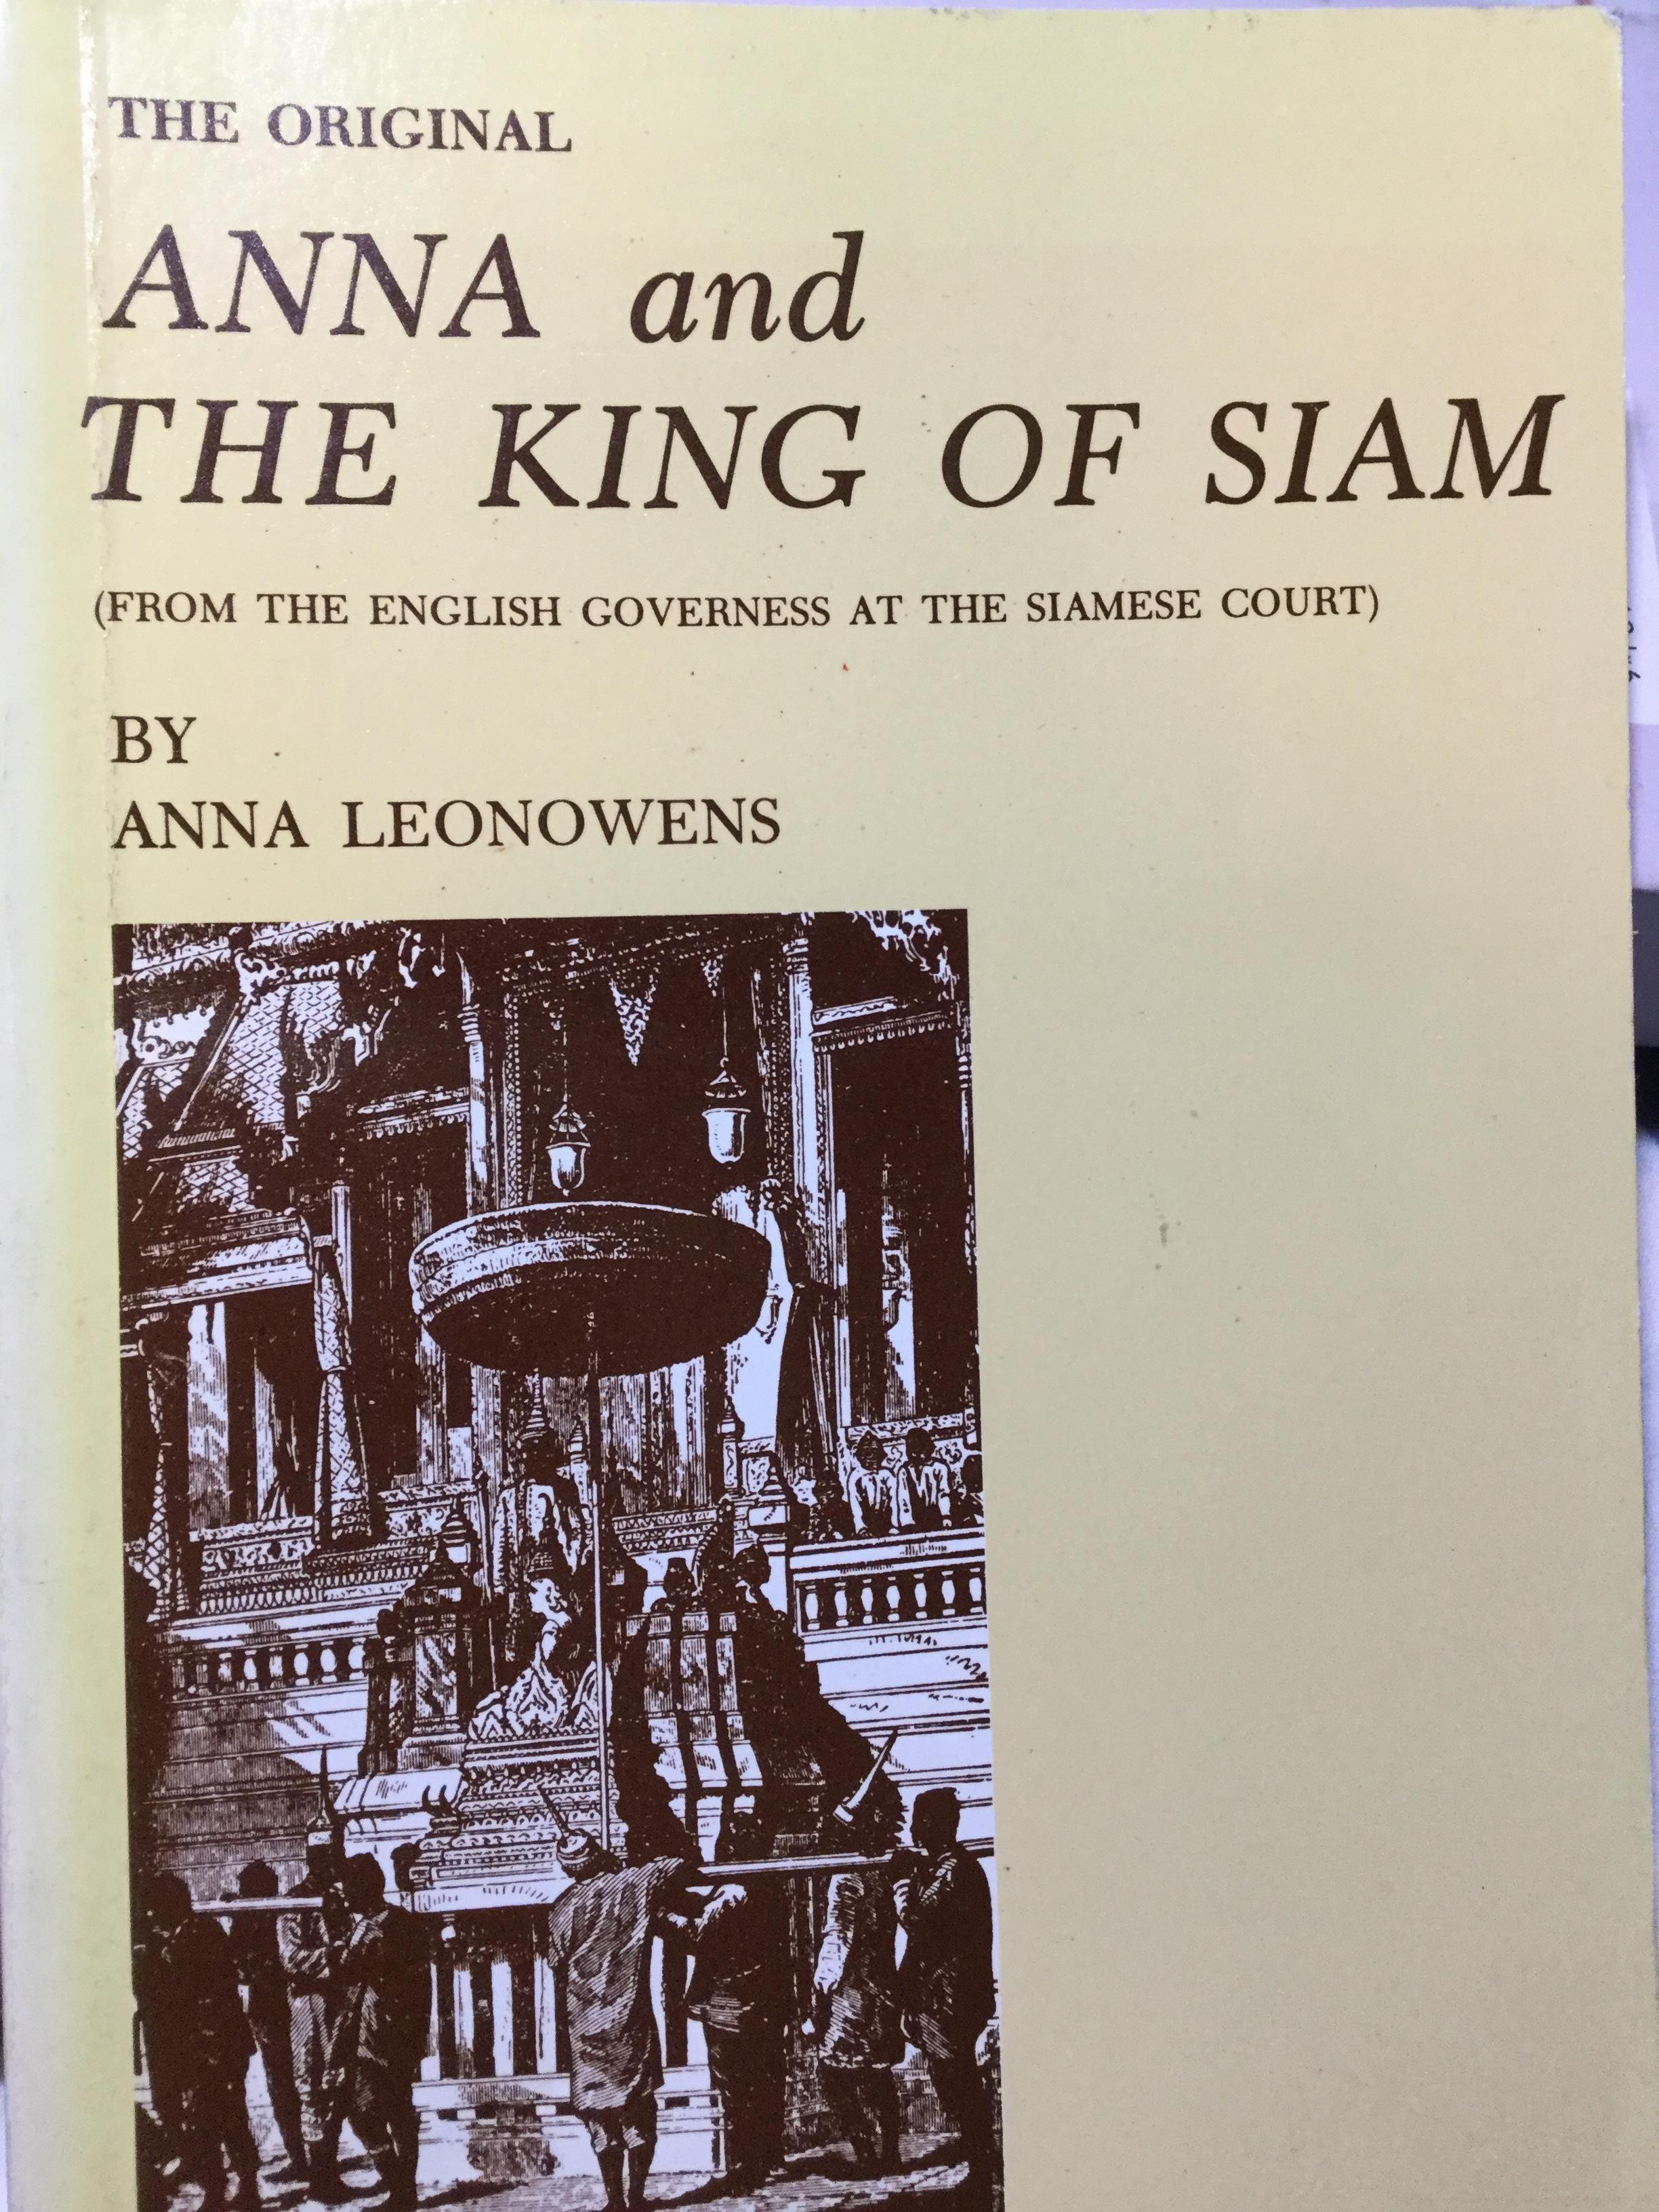 ANNA and THE KING OF SIAM From the English Governess At The Siamese court. By Anna Leonowens